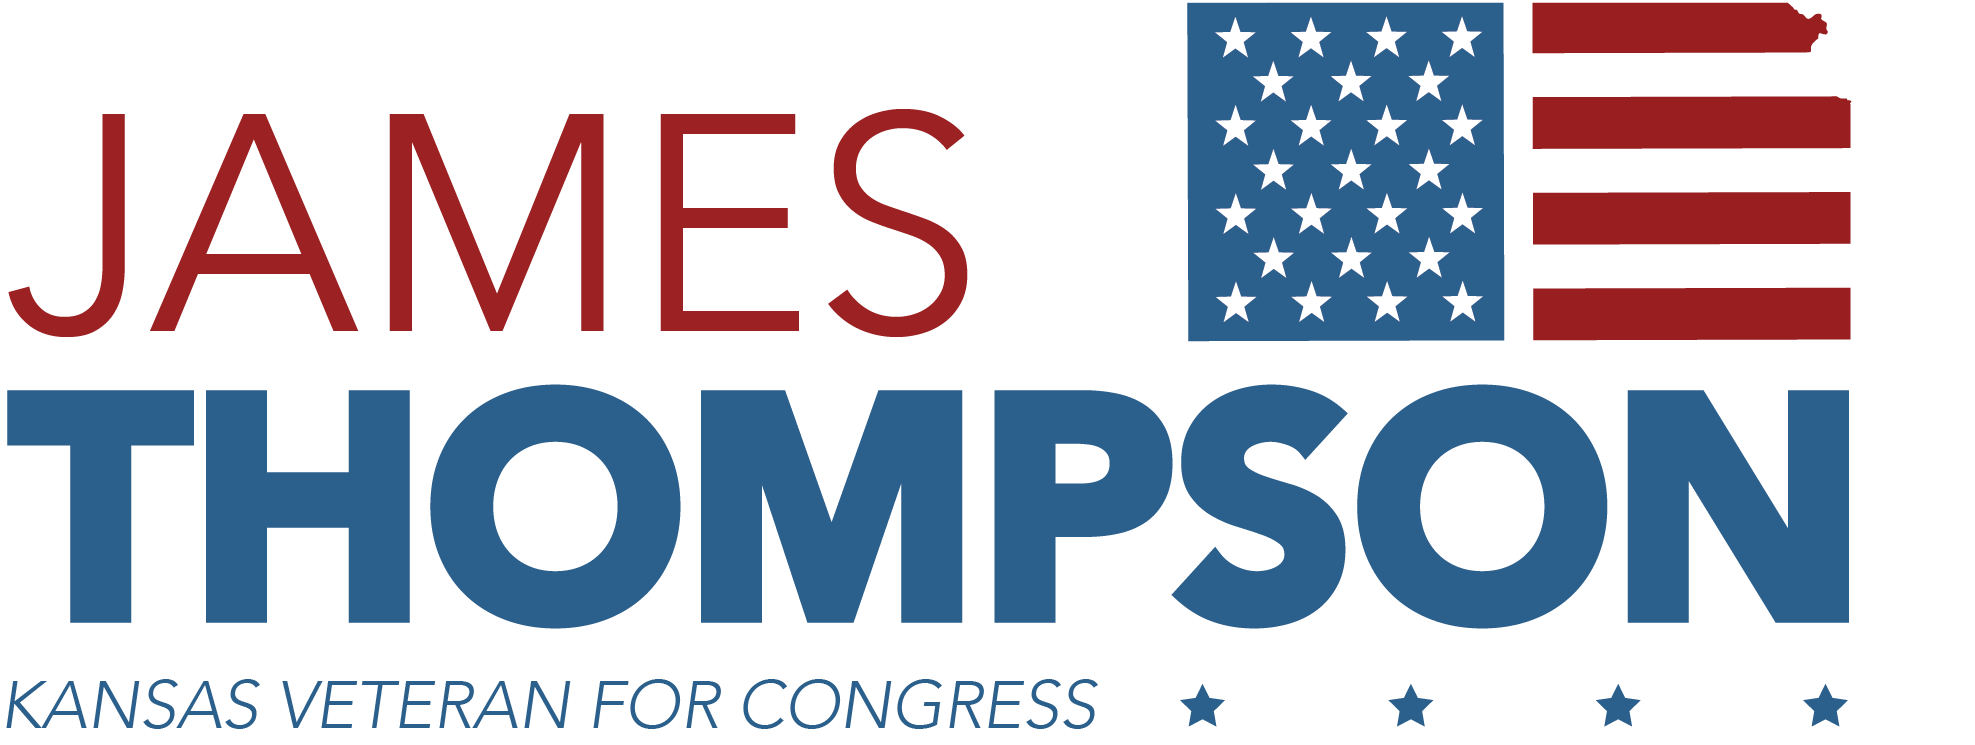 JamesThompsonforCongressLogo.png